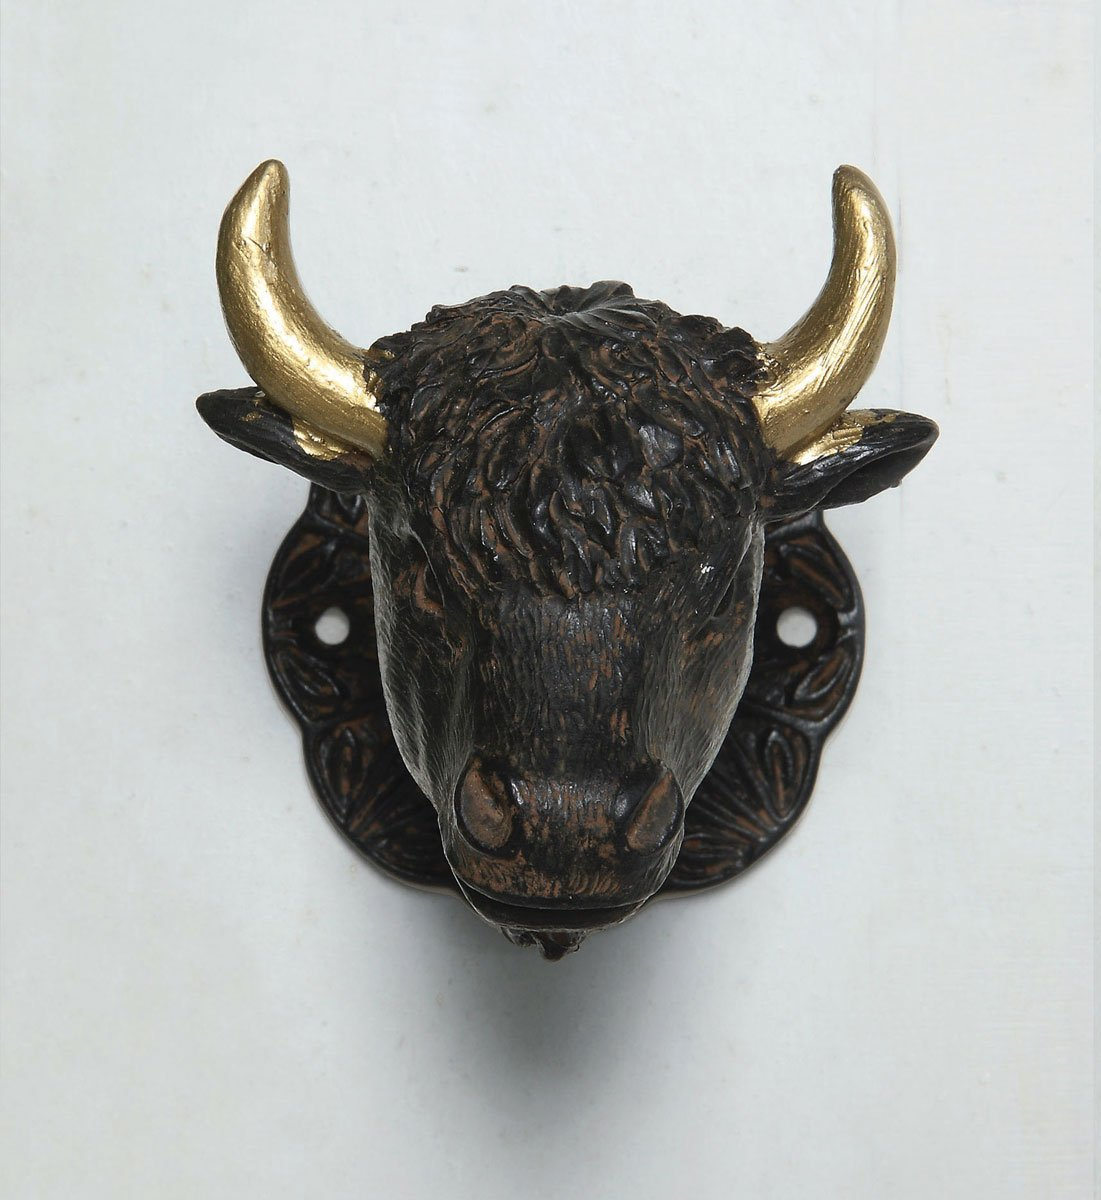 Pewter & Resin Buffalo Head Door Knob Set - Distressed Rust & Antiqued Gold Finish